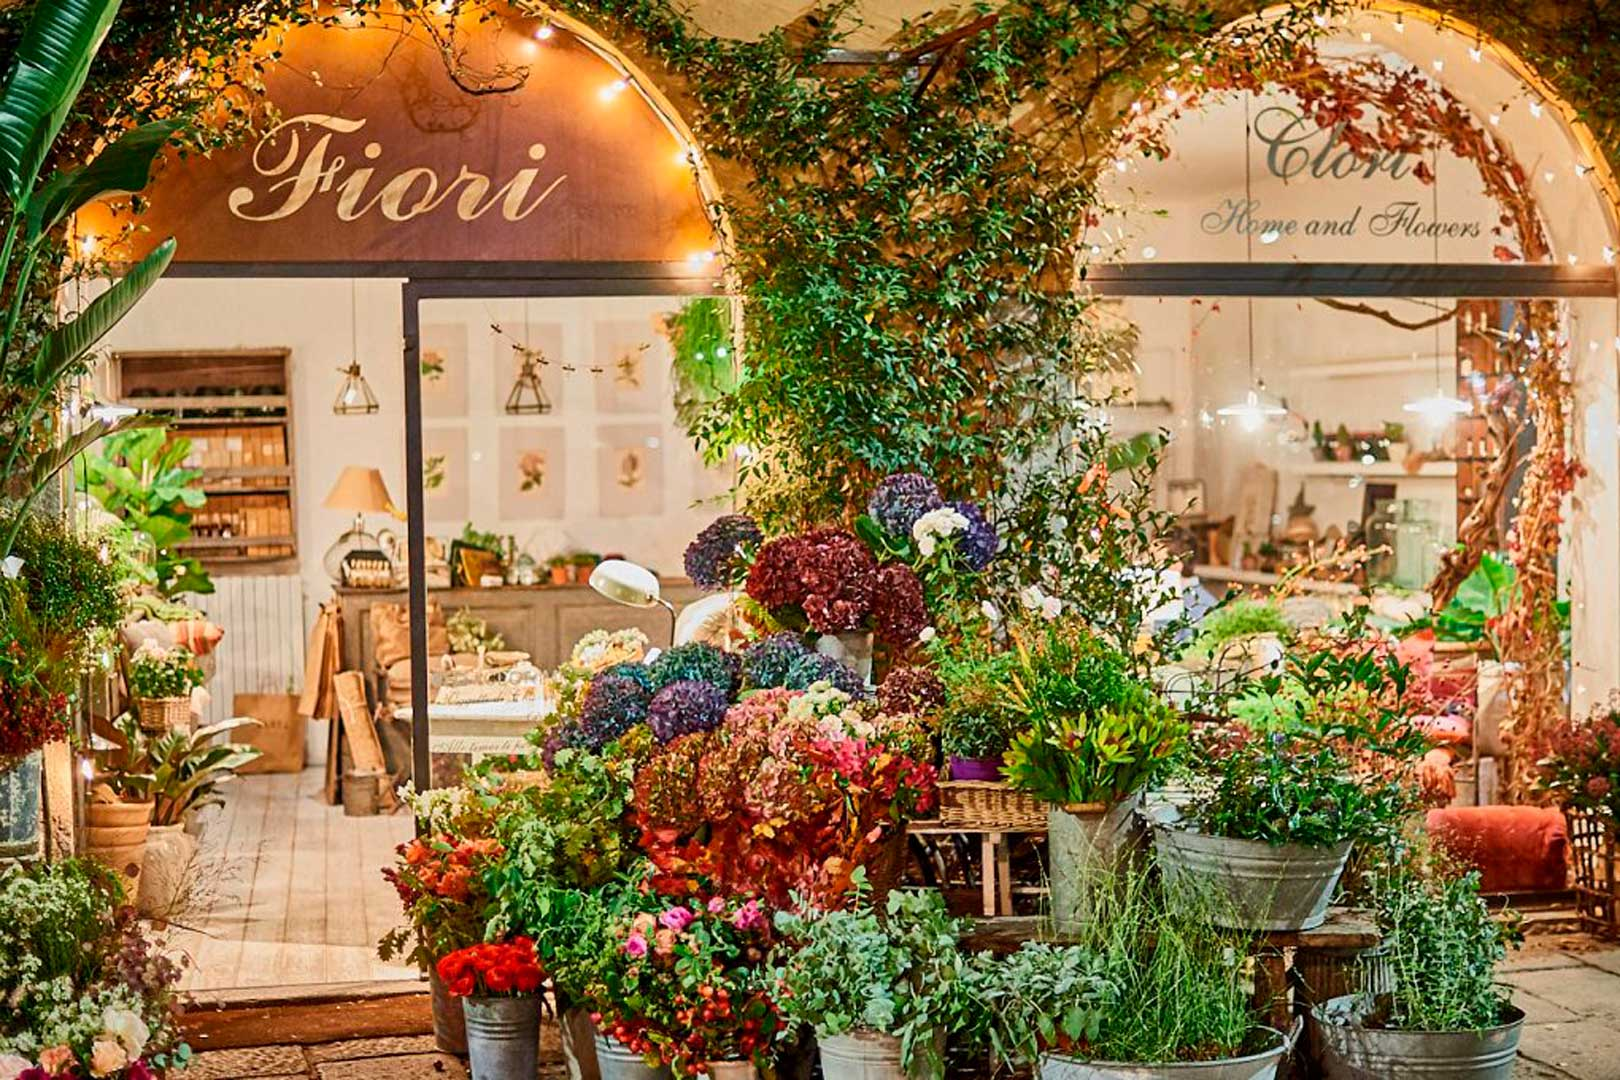 Fiori On Line Milano.The 10 Best Flower Shops In Milan Flawless Milano